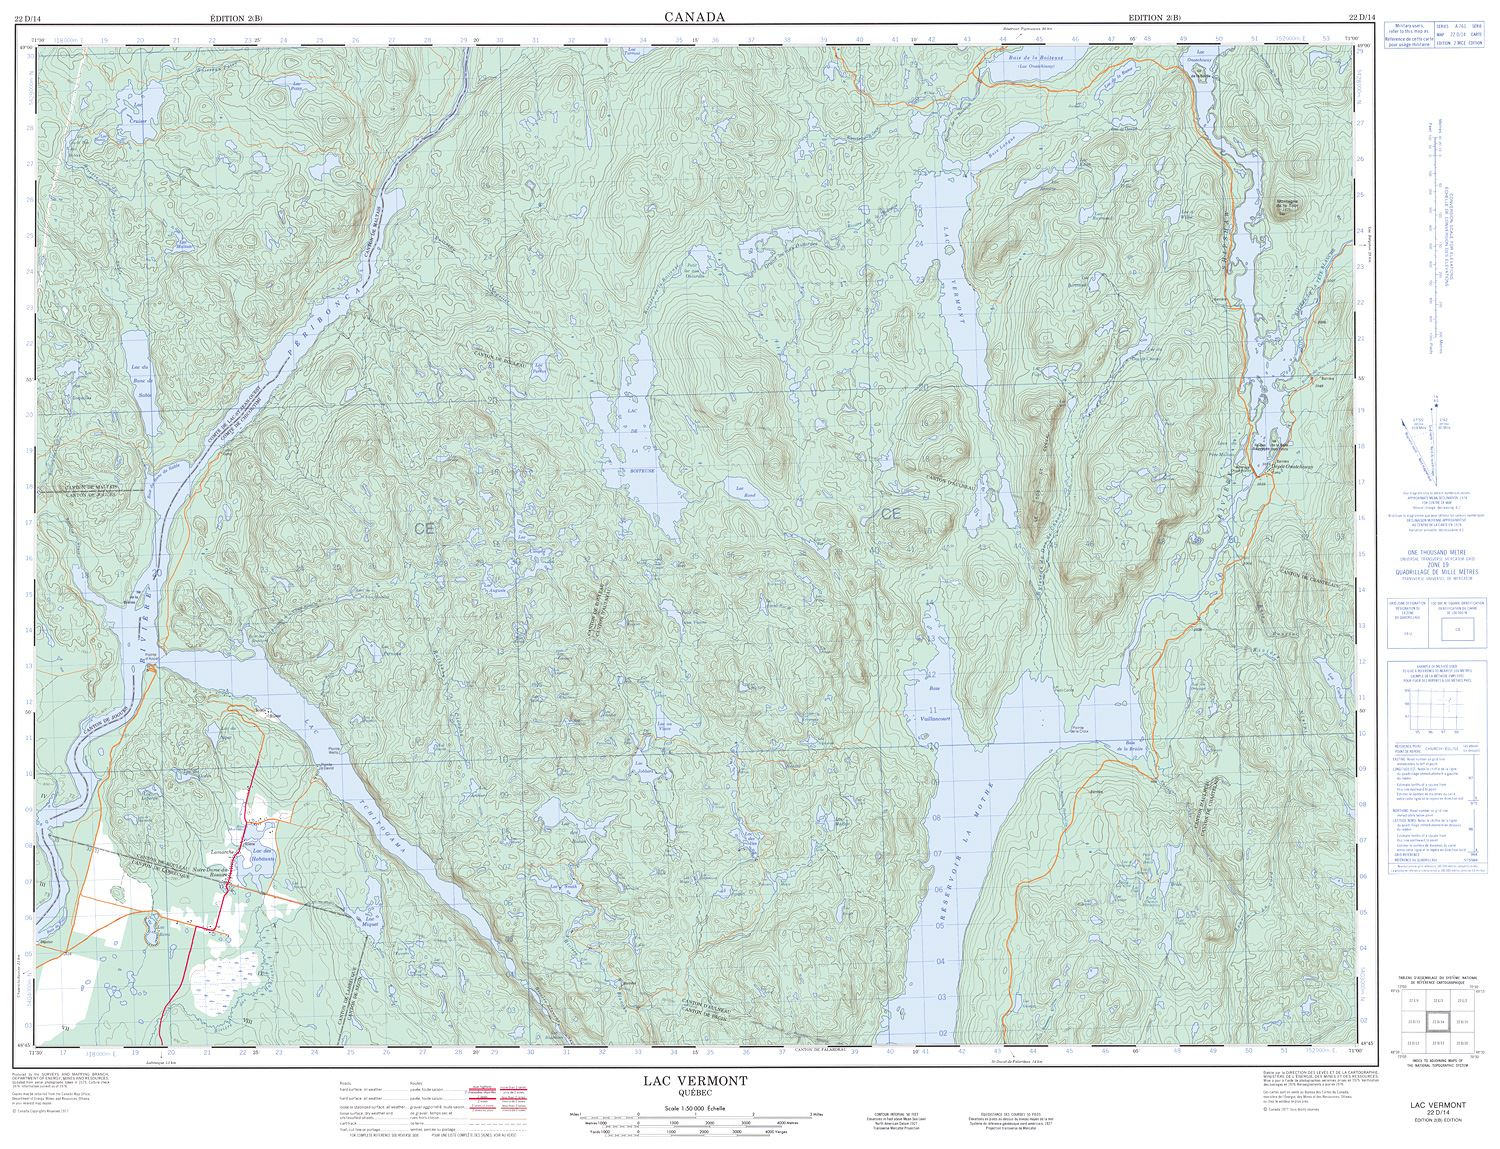 022D14 - LAC VERMONT - Topographic Map